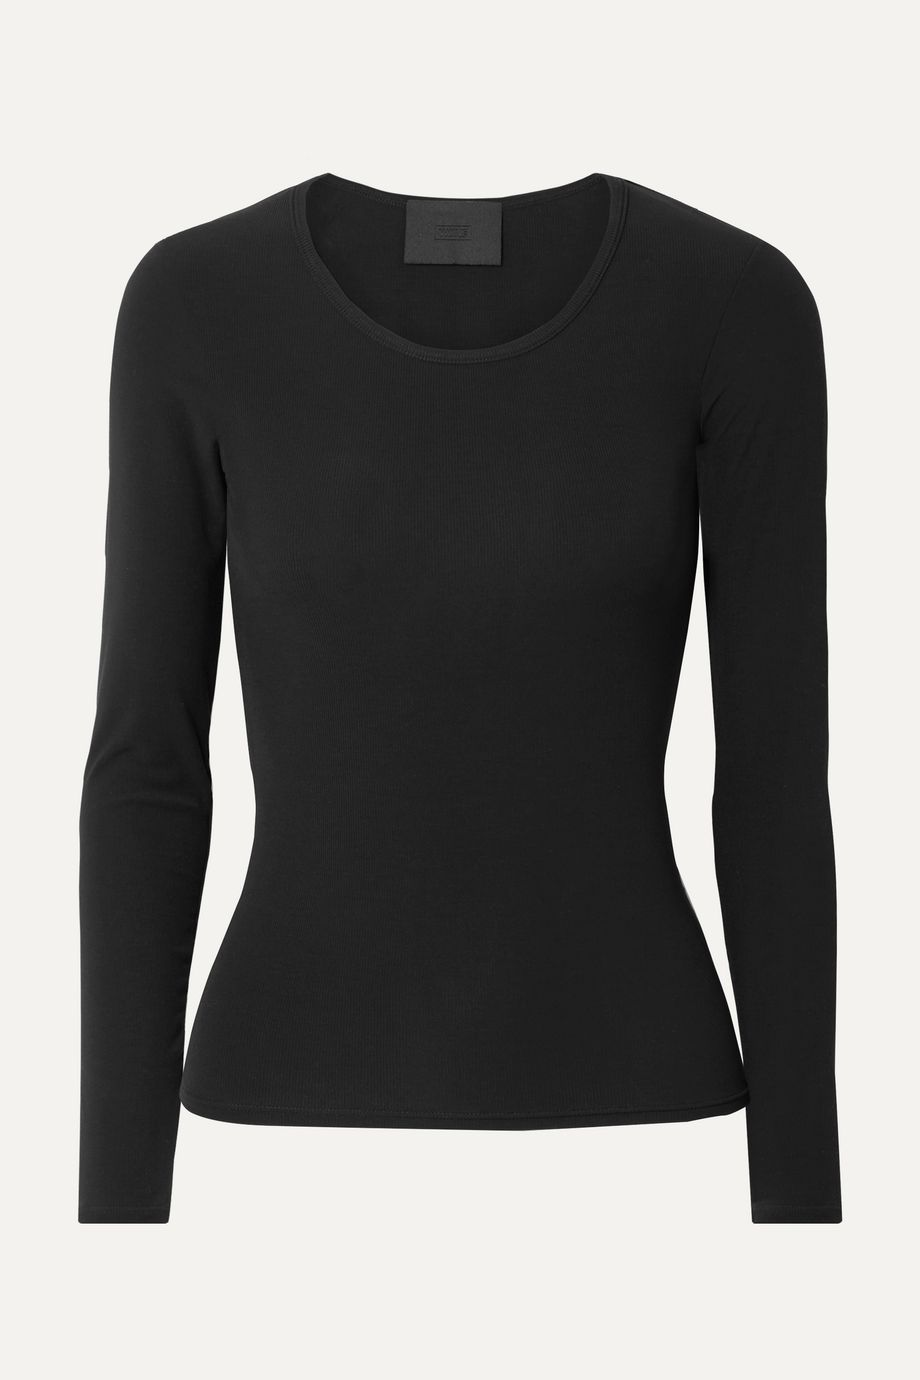 WONE Ribbed Micro Modal-blend jersey top